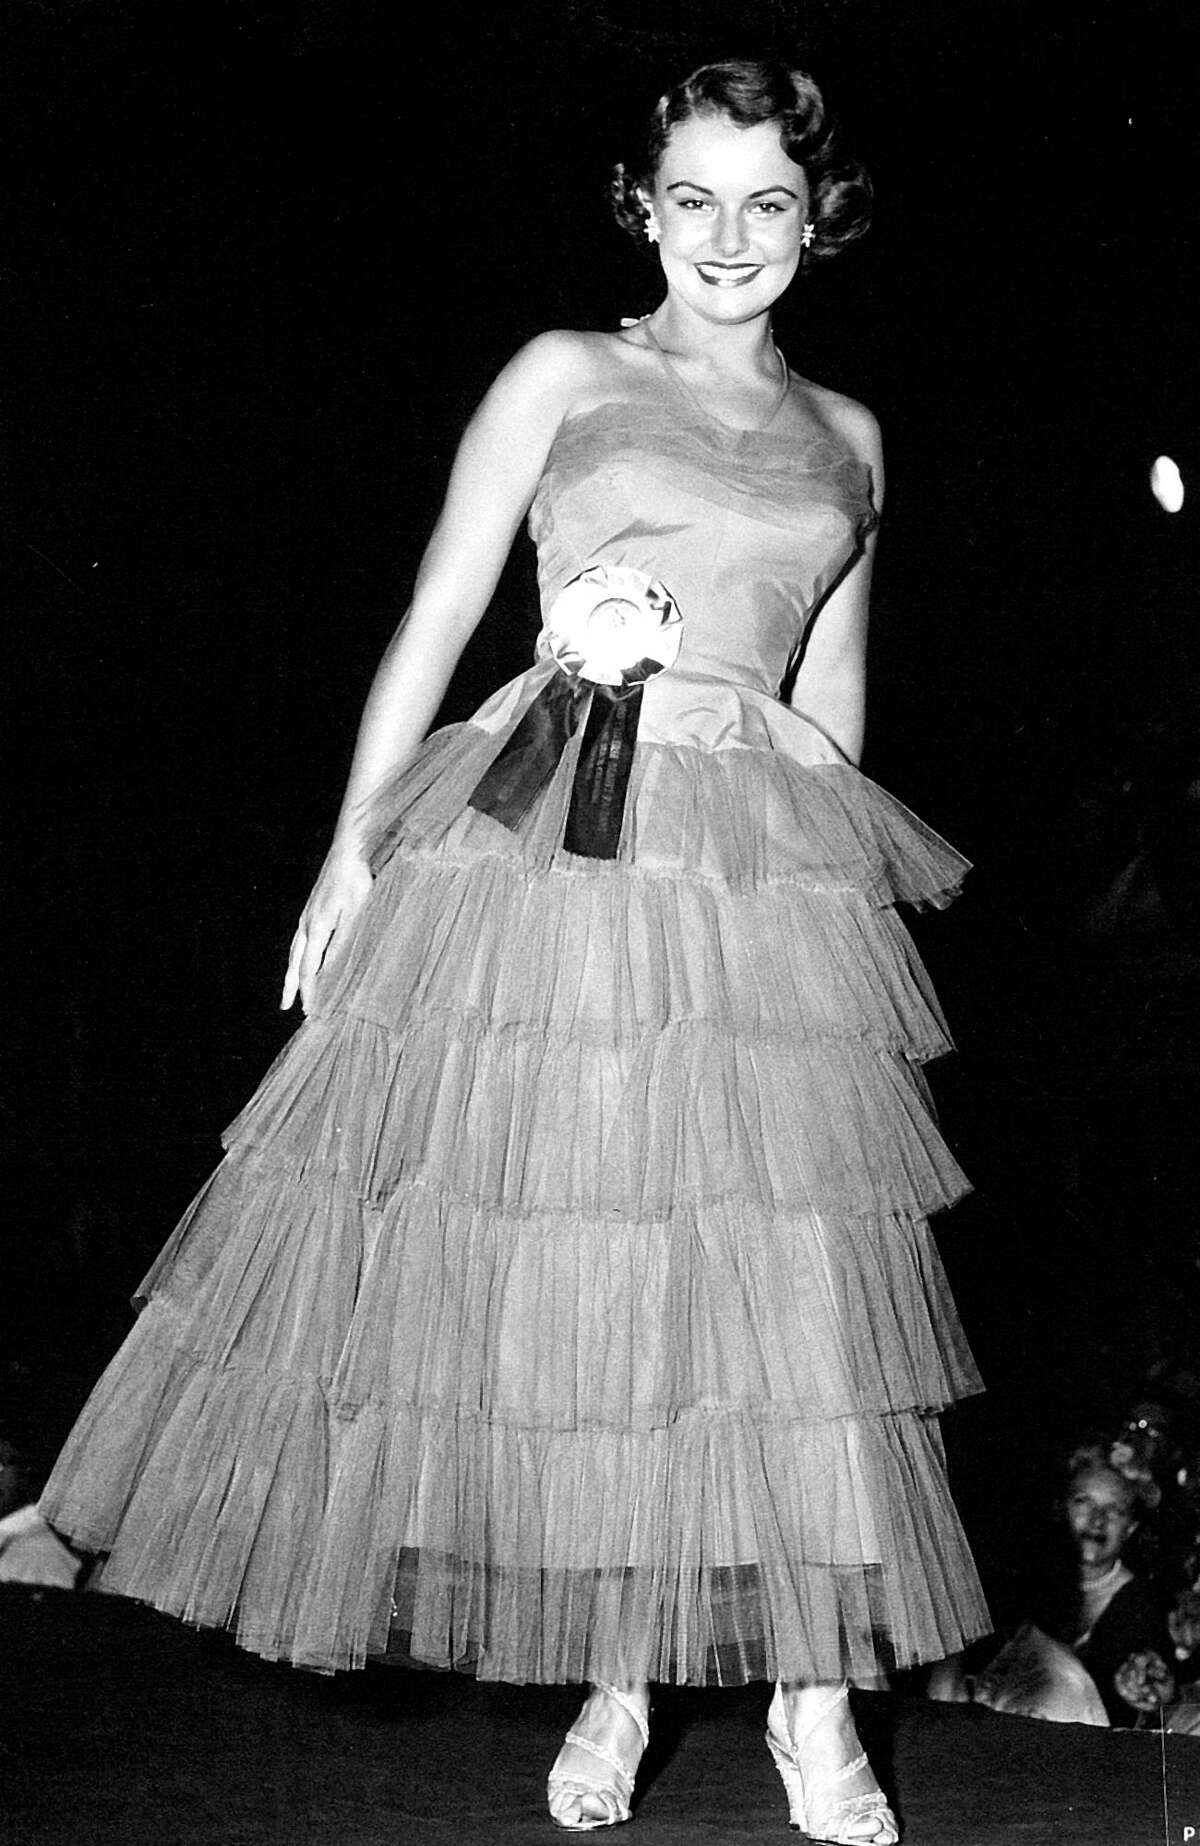 Myrna Hansen of Chicago was just 17 when she was named Miss USA 1953; during judging she donned a green dress she wore at her high school prom. She'd be too young to be in today's pageant.